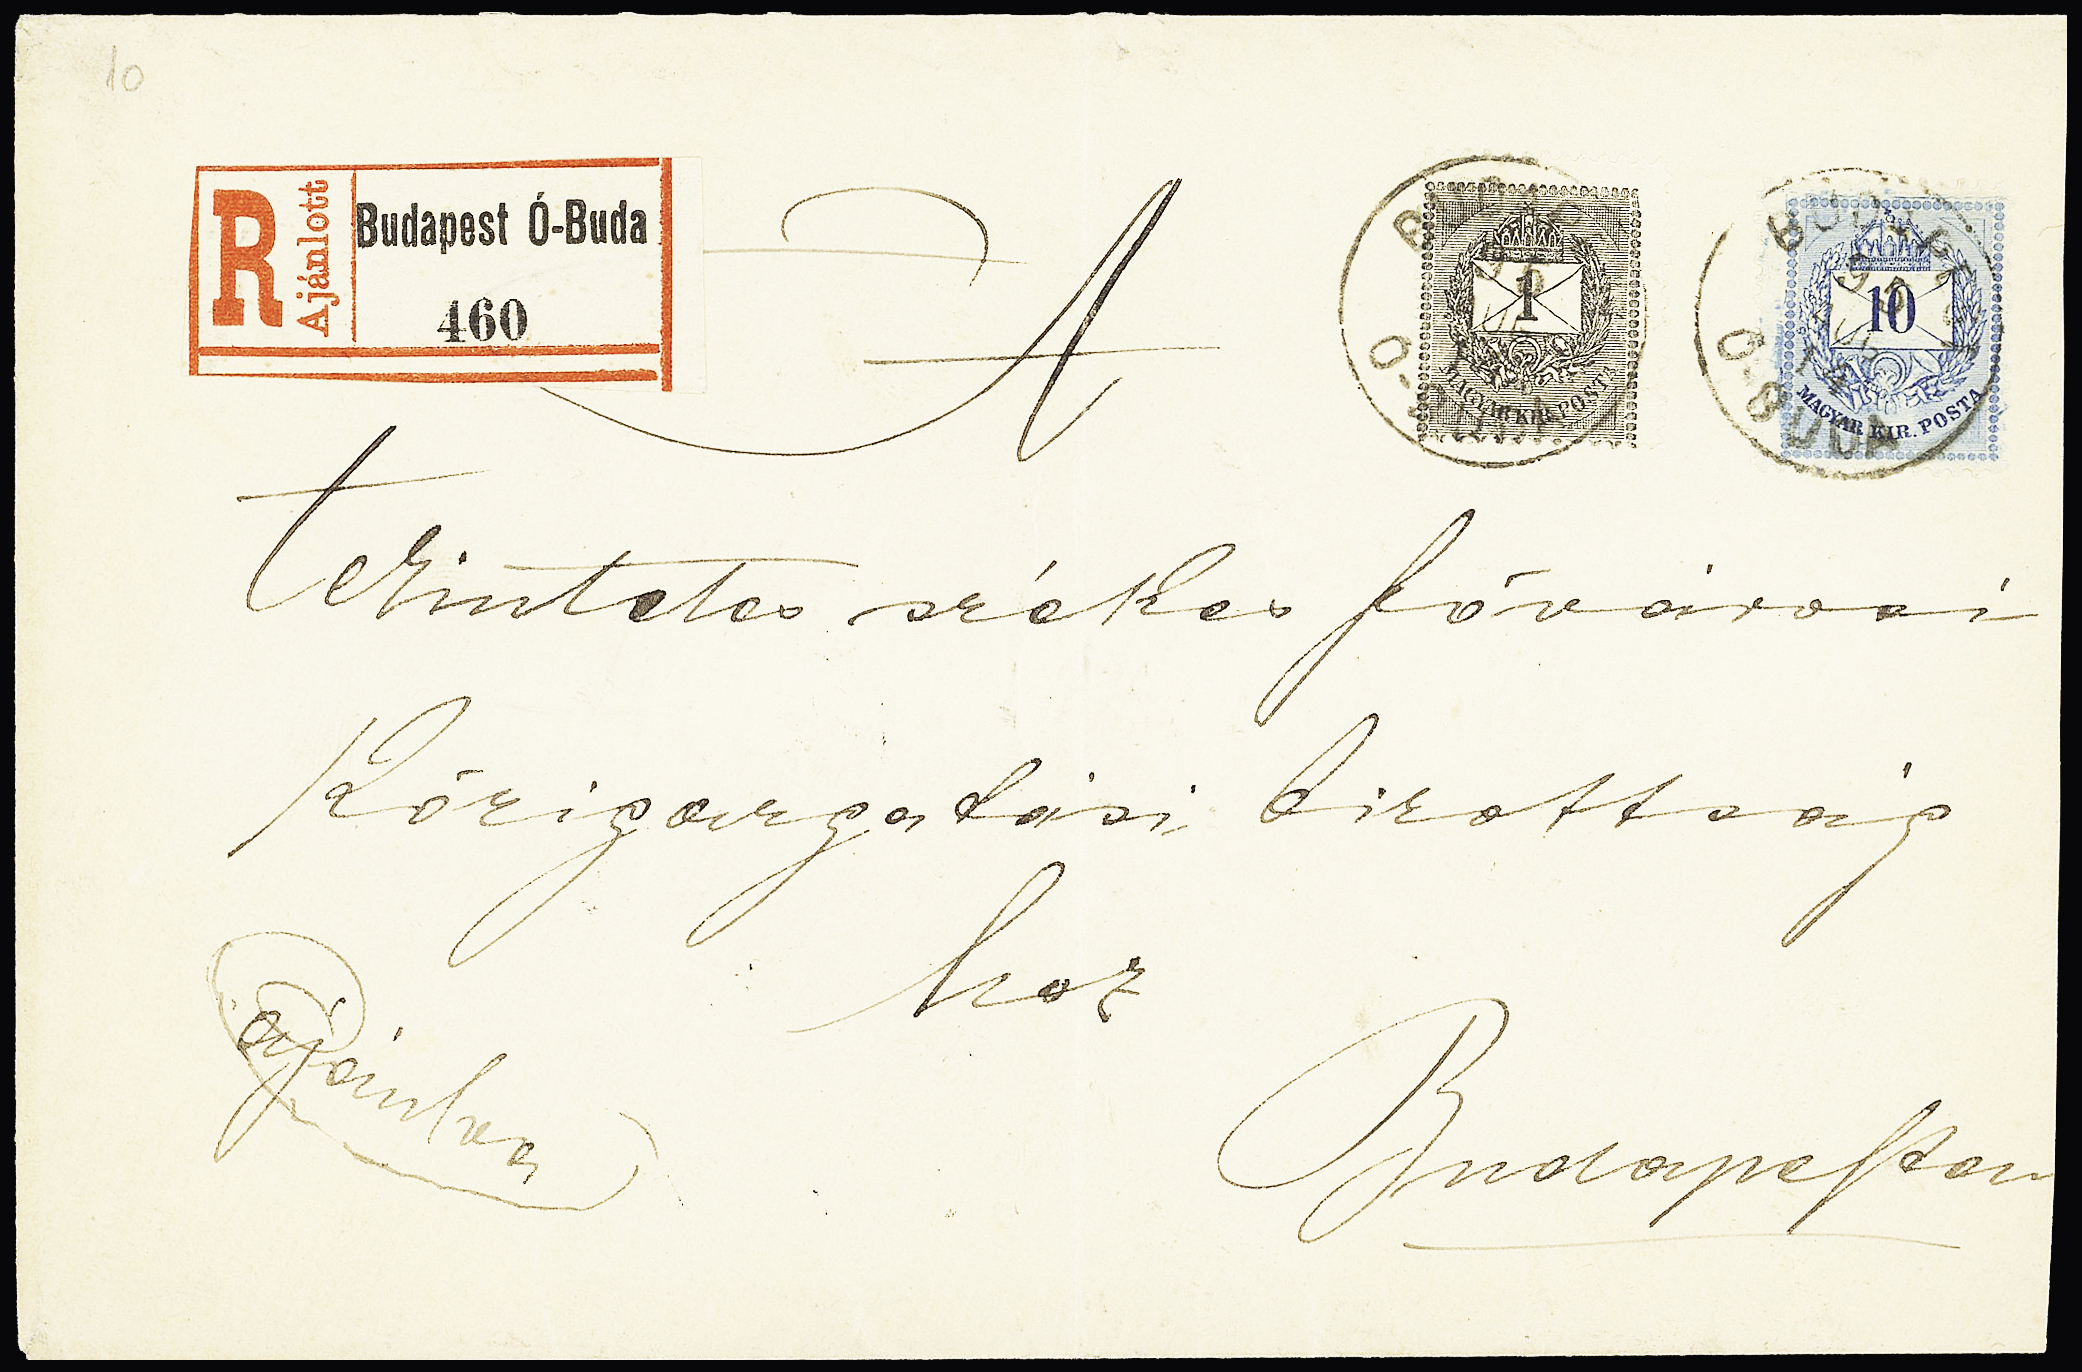 Lot 620 - Eastern Europe » Hungary  -  Le Timbre Classique SA SALE ON OFFERS N ° 37 PARIS